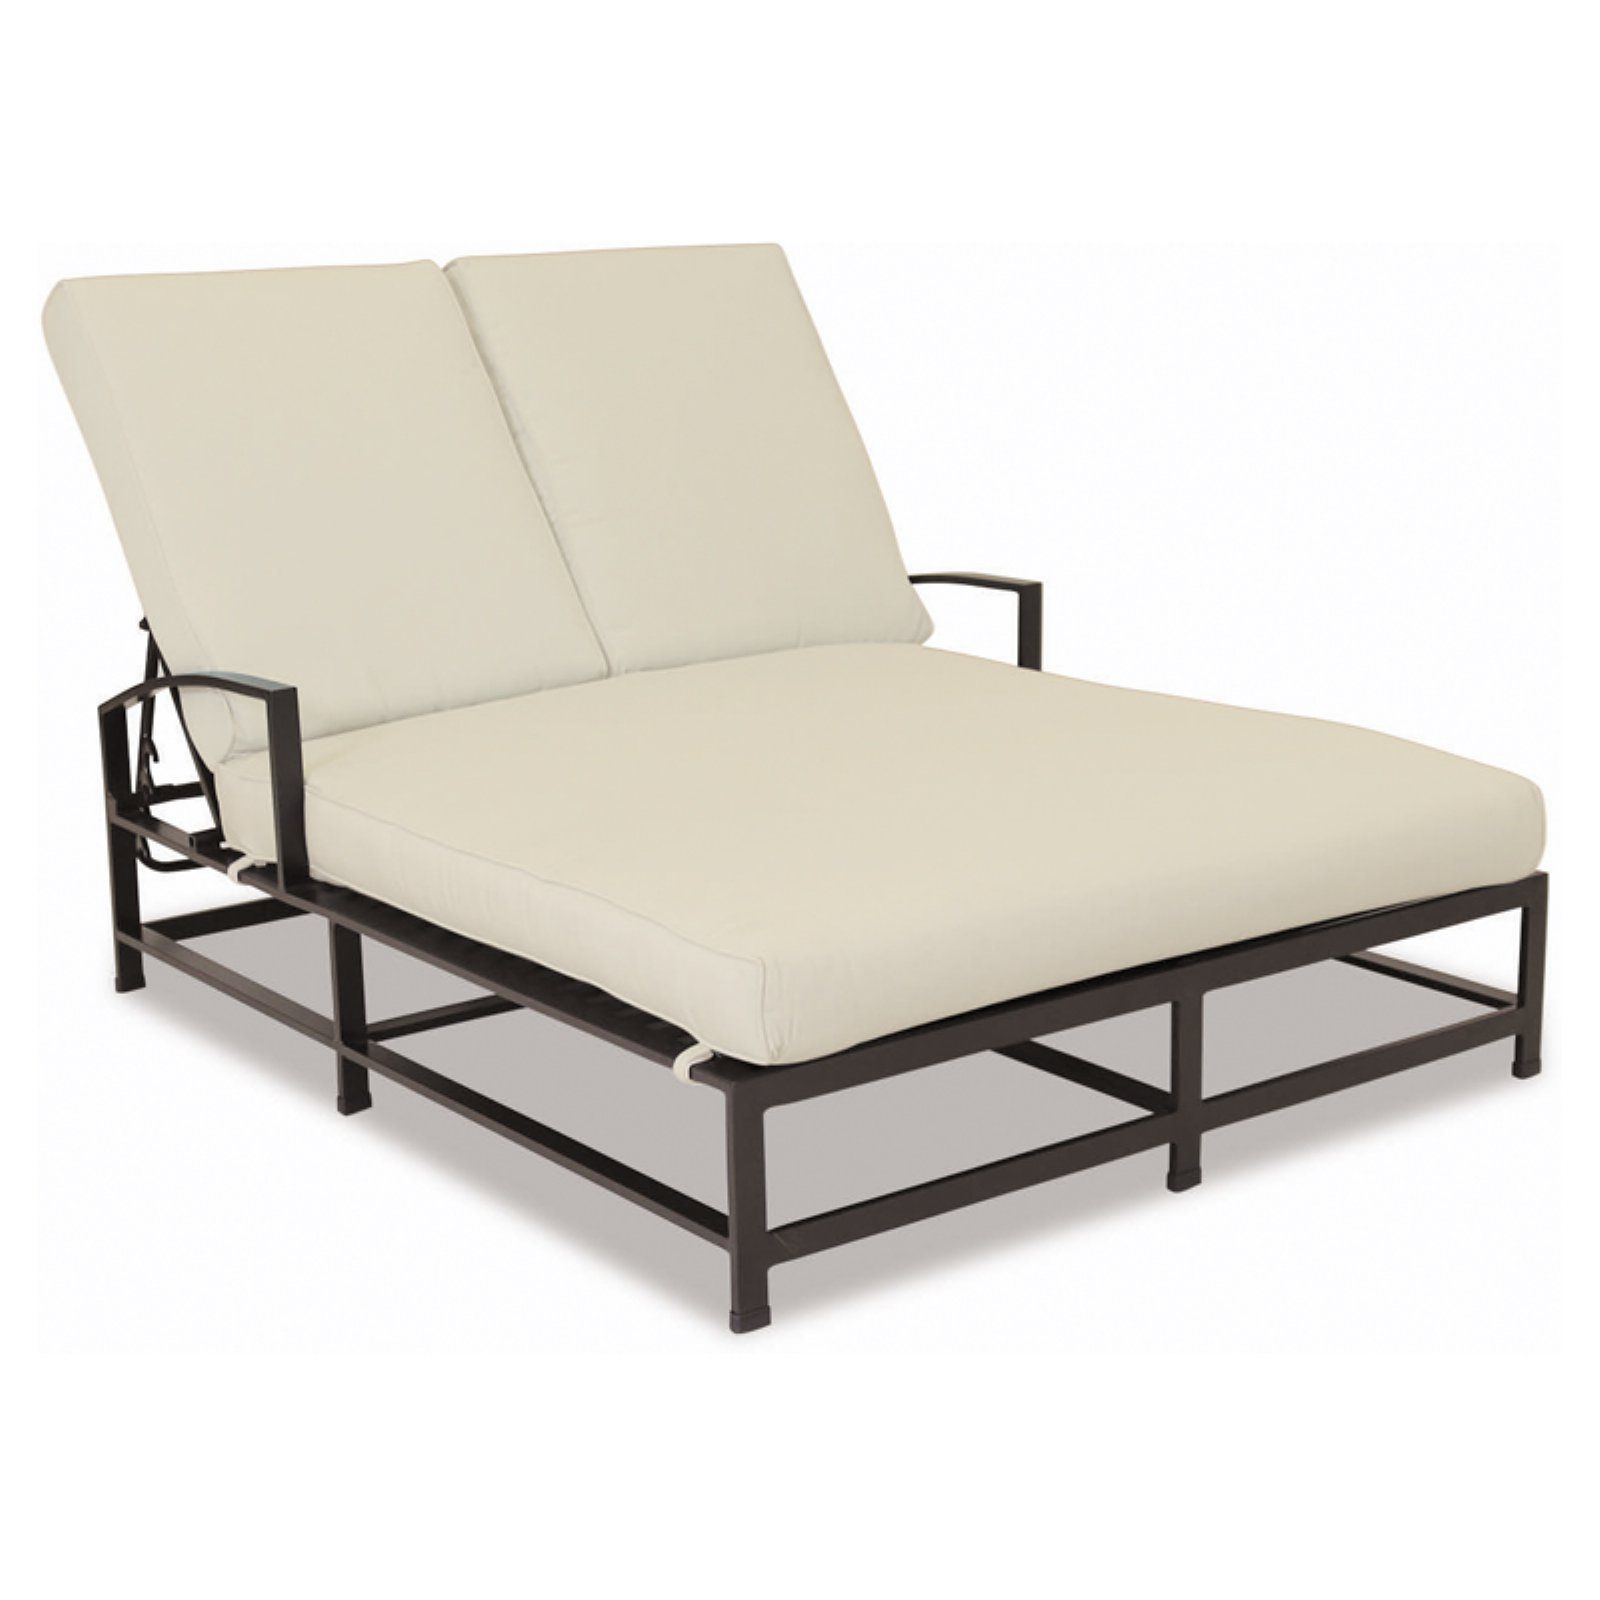 Outdoor Sunset West La Jolla Aluminum Double Chaise Lounge With Cushion Canvas Flax Products In 2019 Chaise Cushions Patio Chaise Lounge